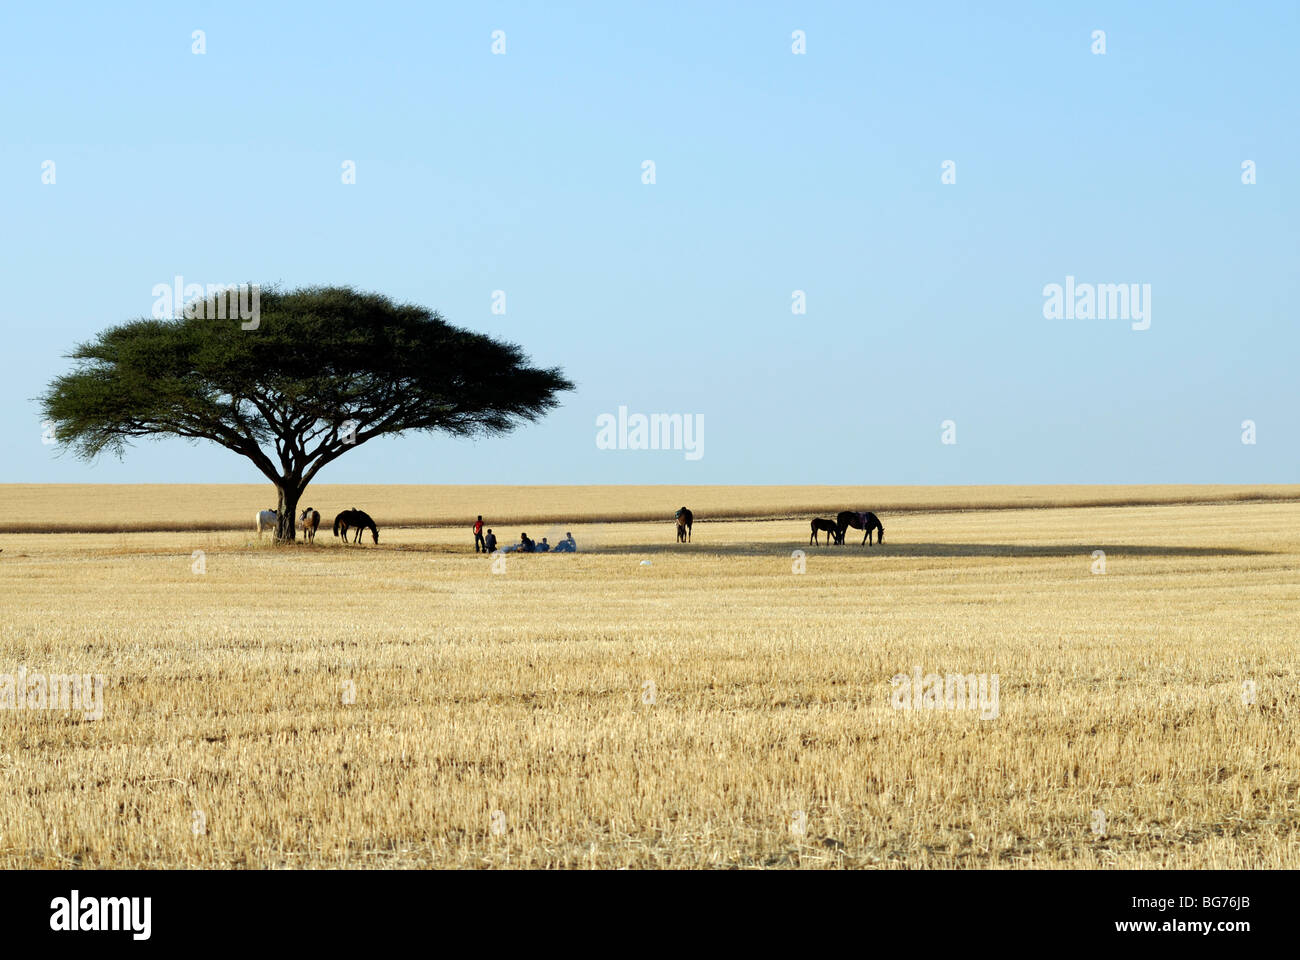 Israel, Negev, Horsemen at rest under a lone acacia tree in a wheat field - Stock Image